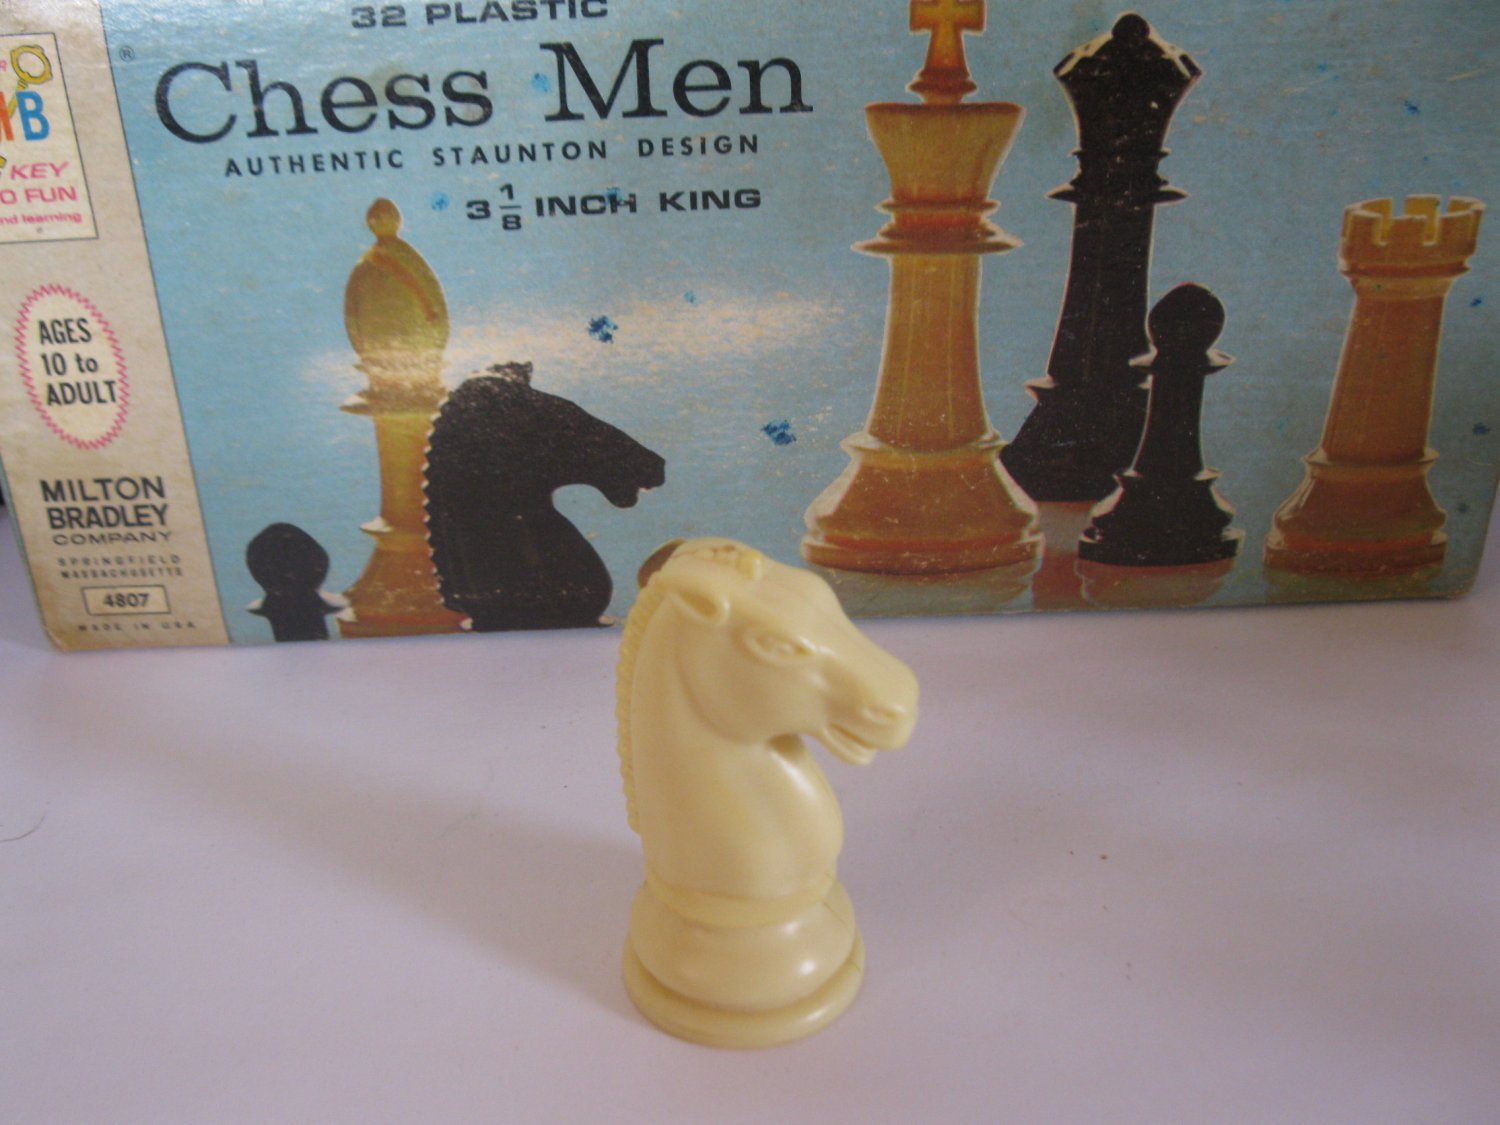 1969 Chess Men Board Game Piece: Authentic Stauton Design - White Knight